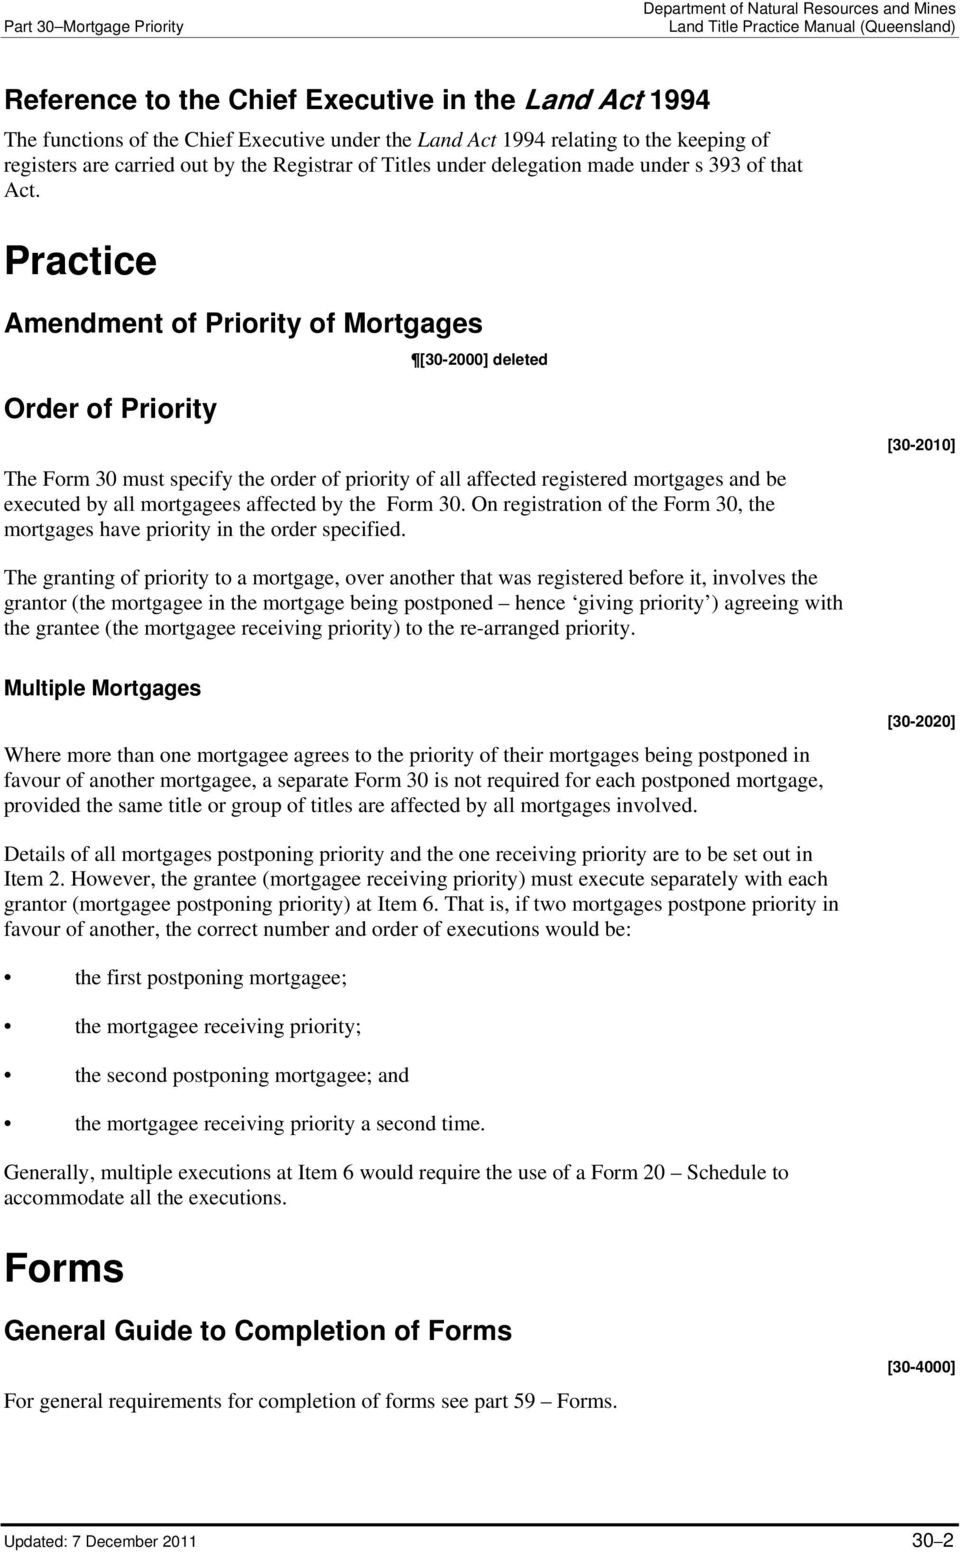 Practice Amendment of Priority of Mortgages [30-2000] deleted Order of Priority The Form 30 must specify the order of priority of all affected registered mortgages and be executed by all mortgagees